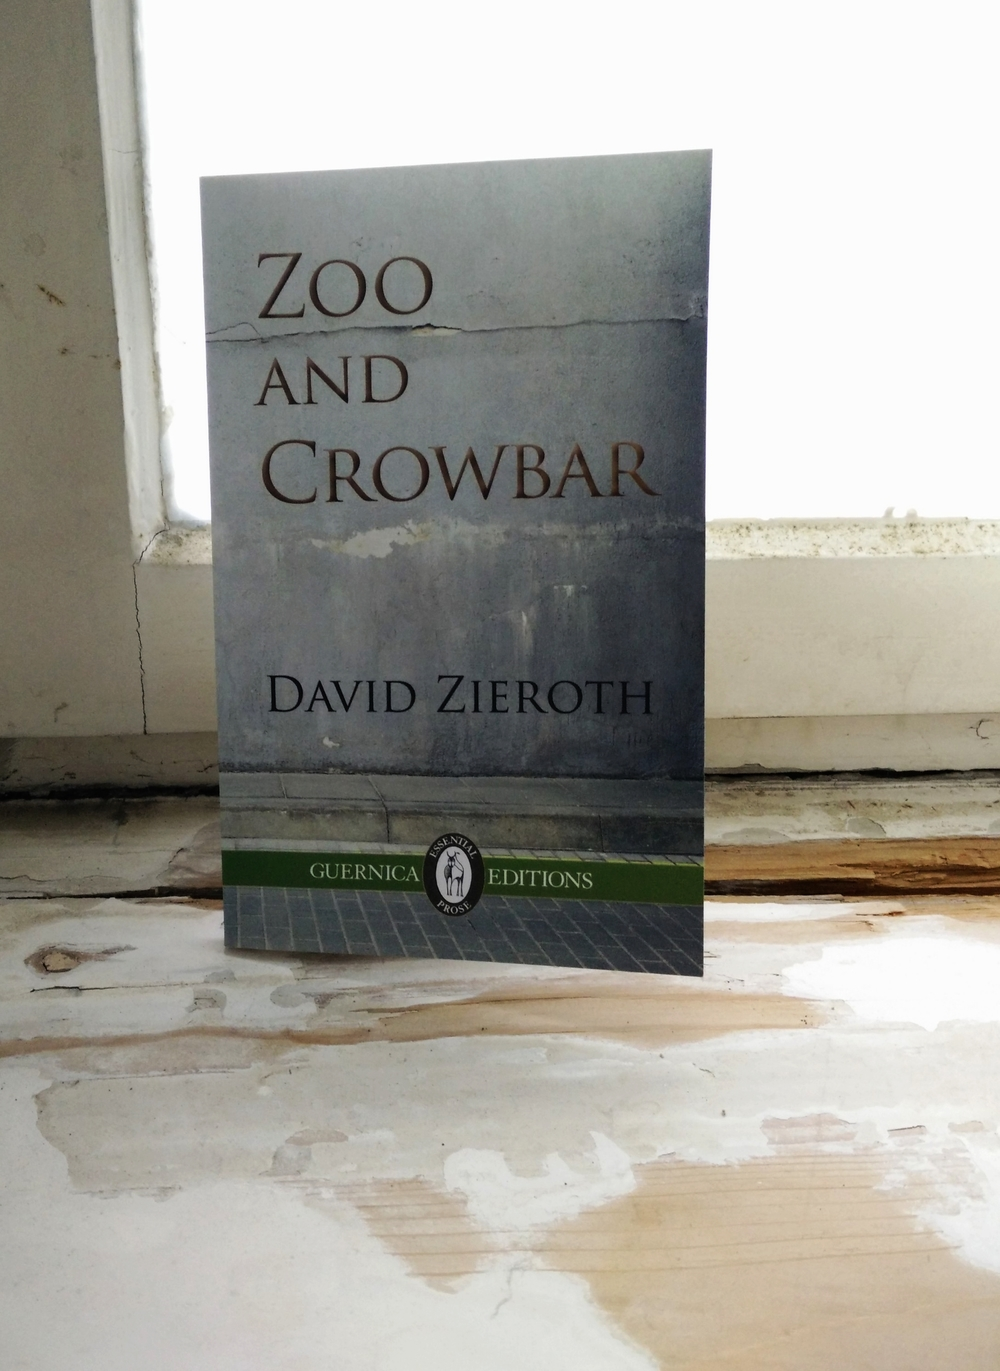 Zoo and Crowbar     Guernic    a Editions     2015